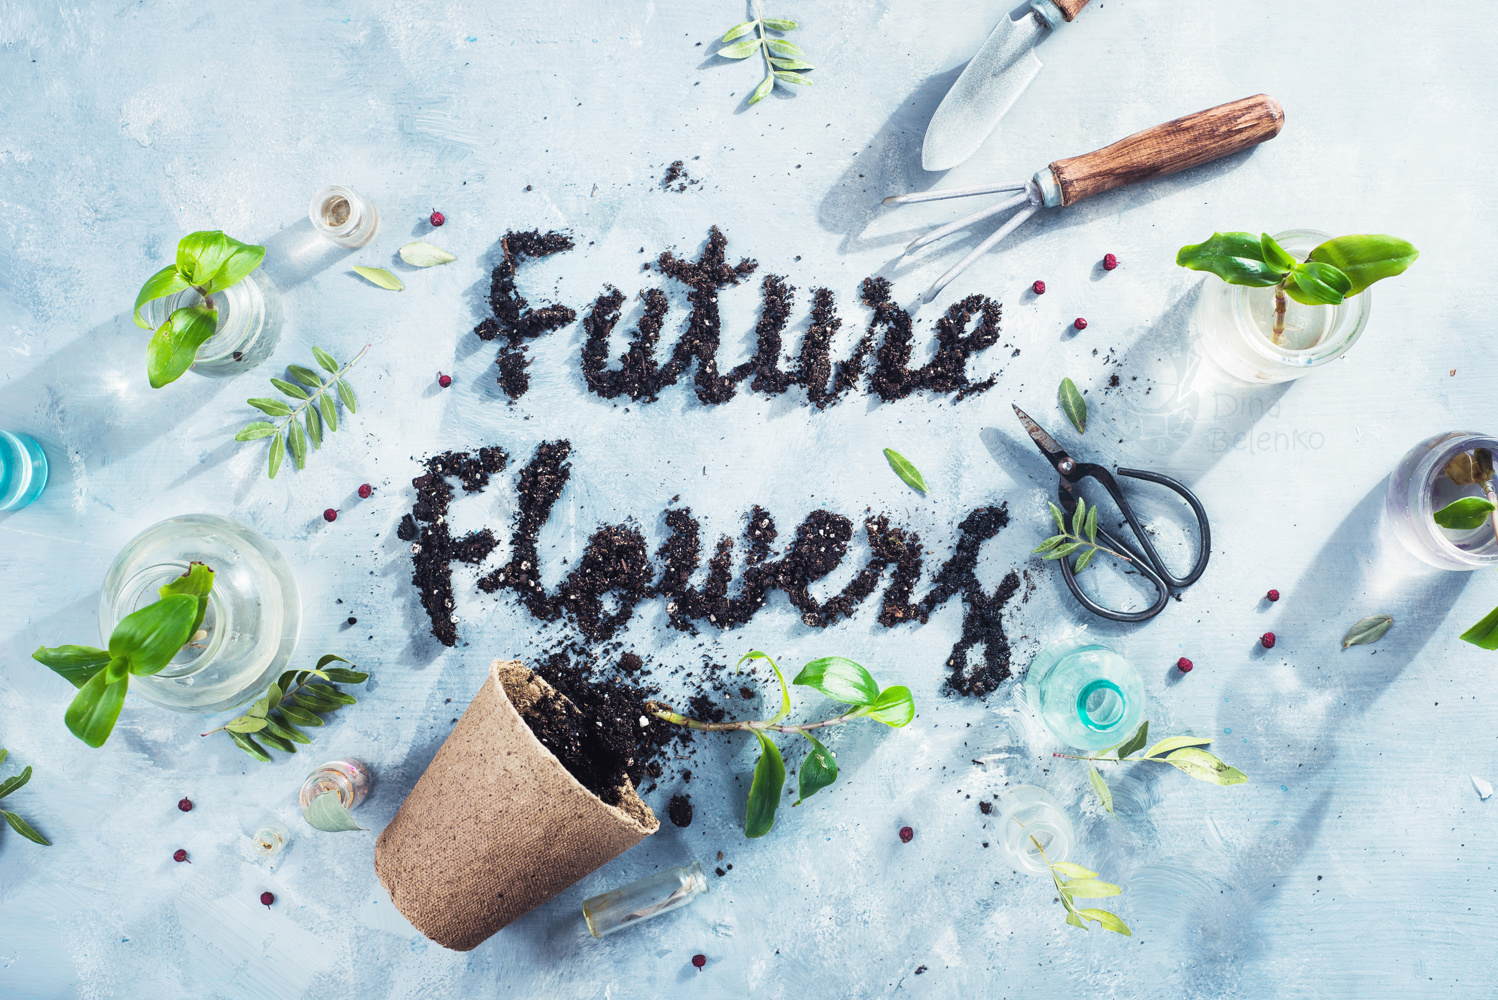 Future flowers by Dina Belenko